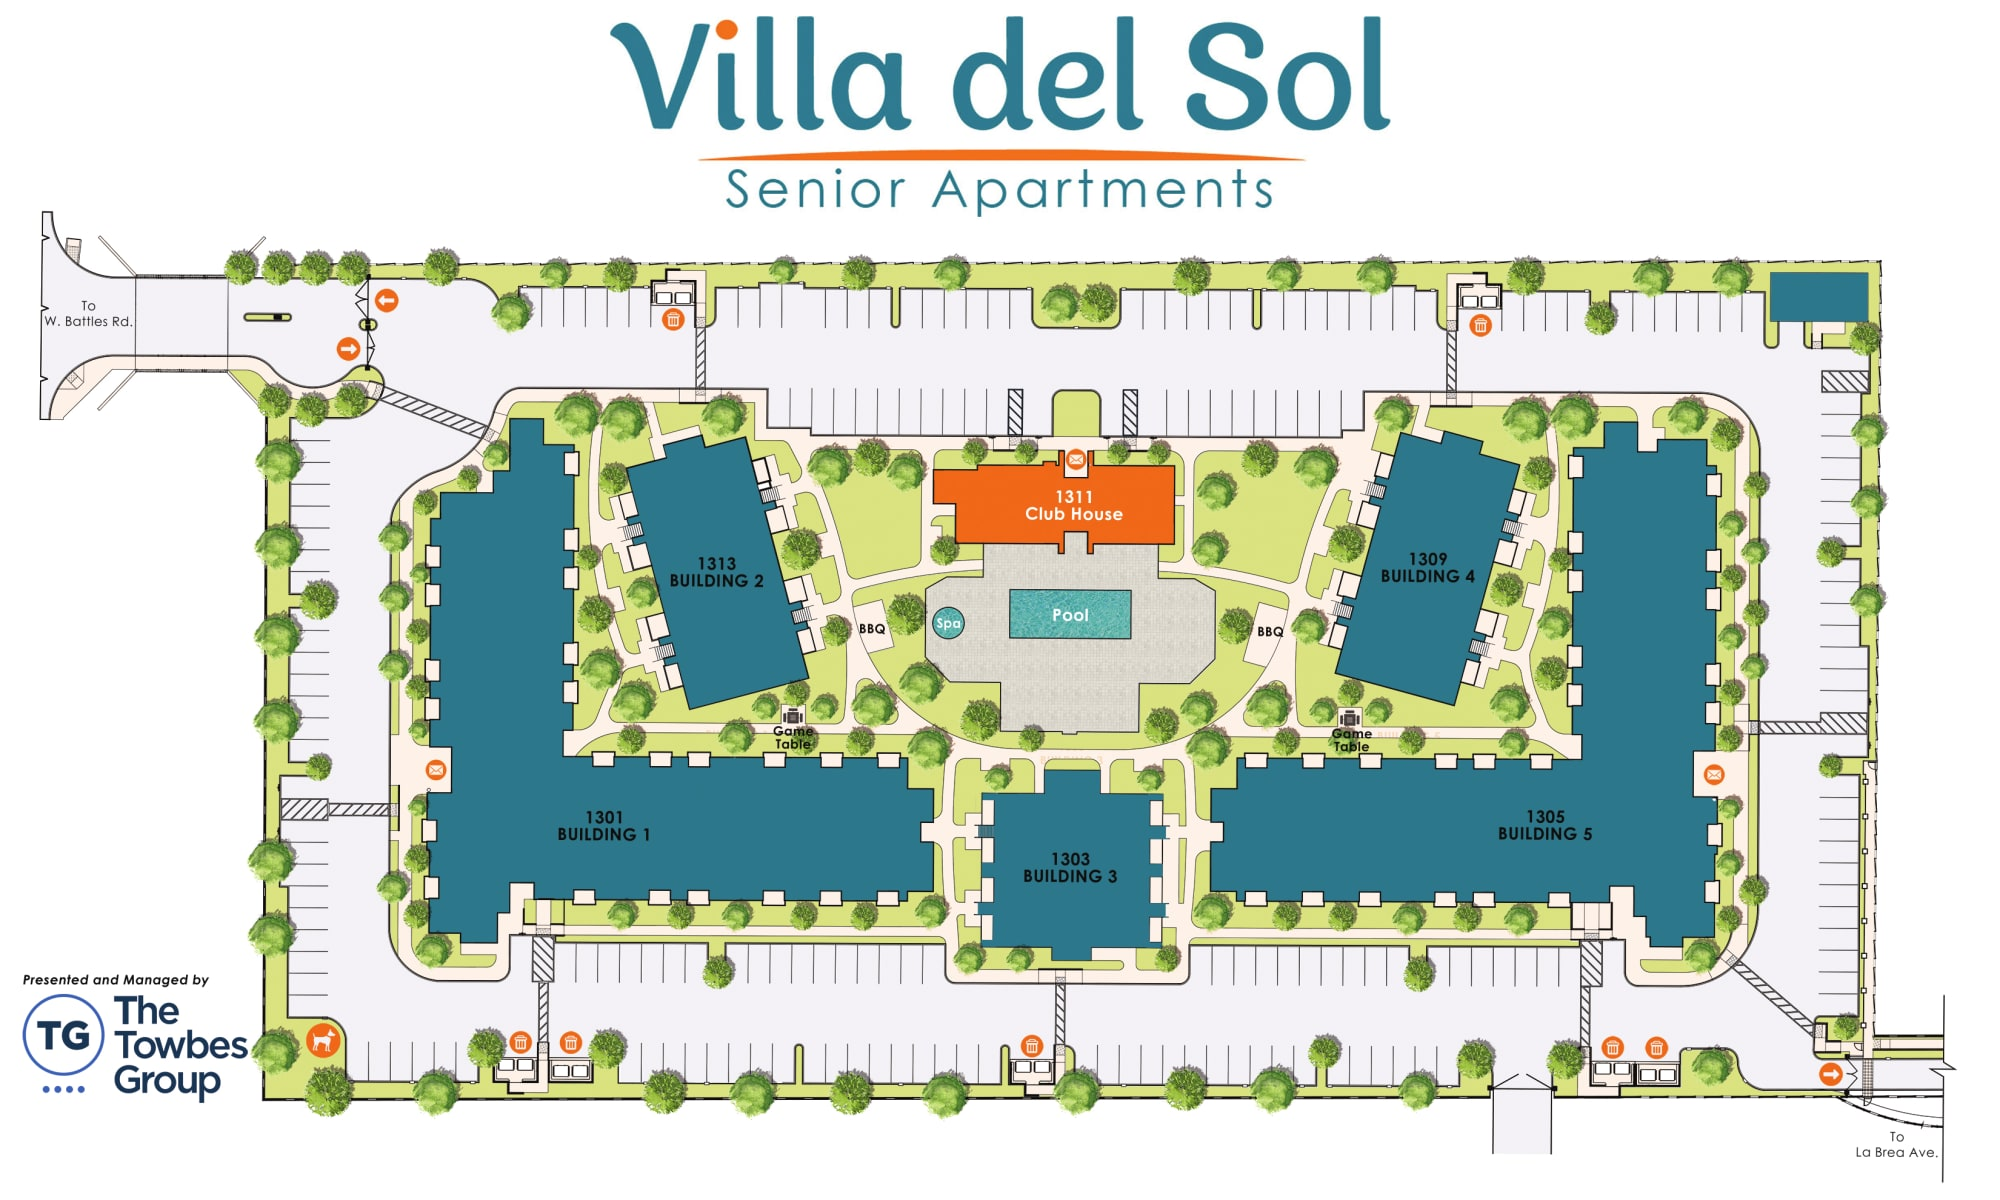 View our property map of Villa del Sol